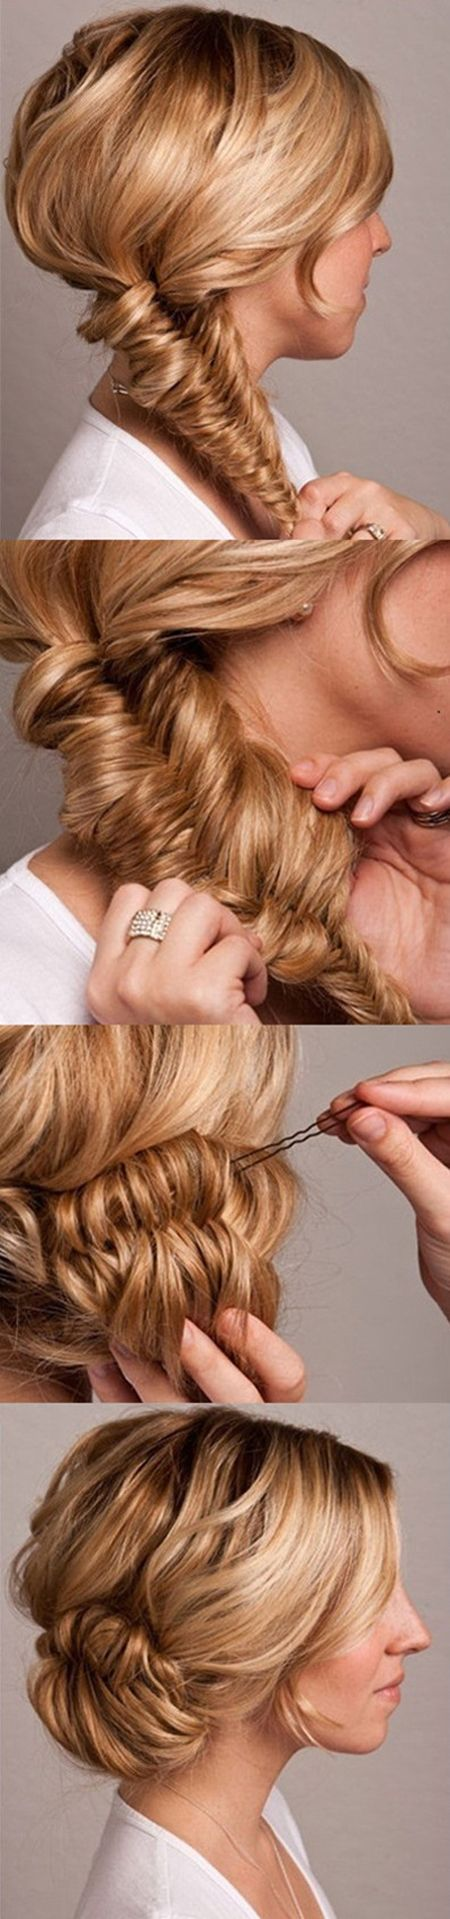 fishtail braid up-do